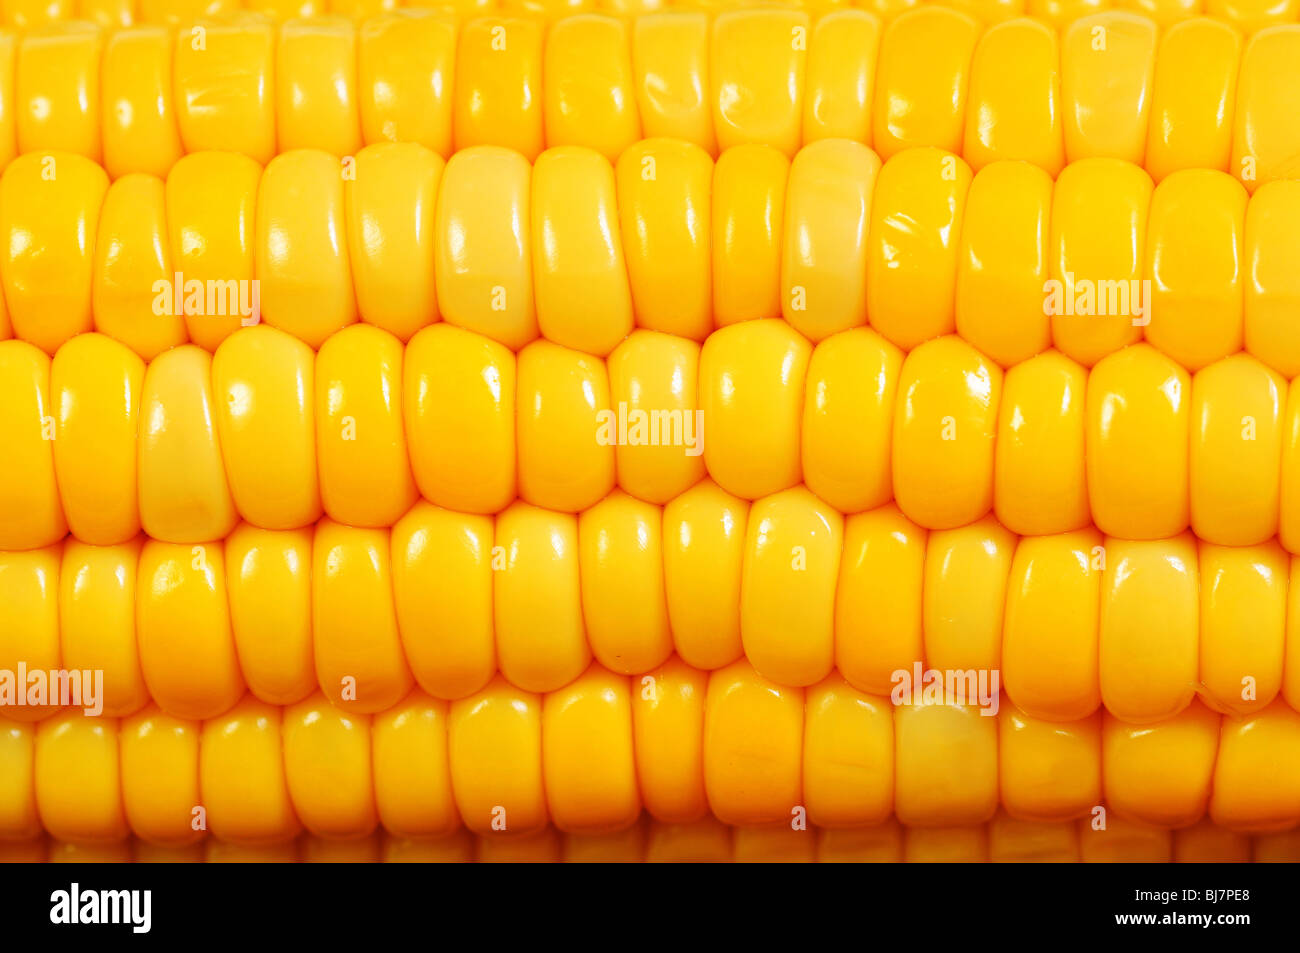 Extreme close up of yellow corn cobs texture - Stock Image